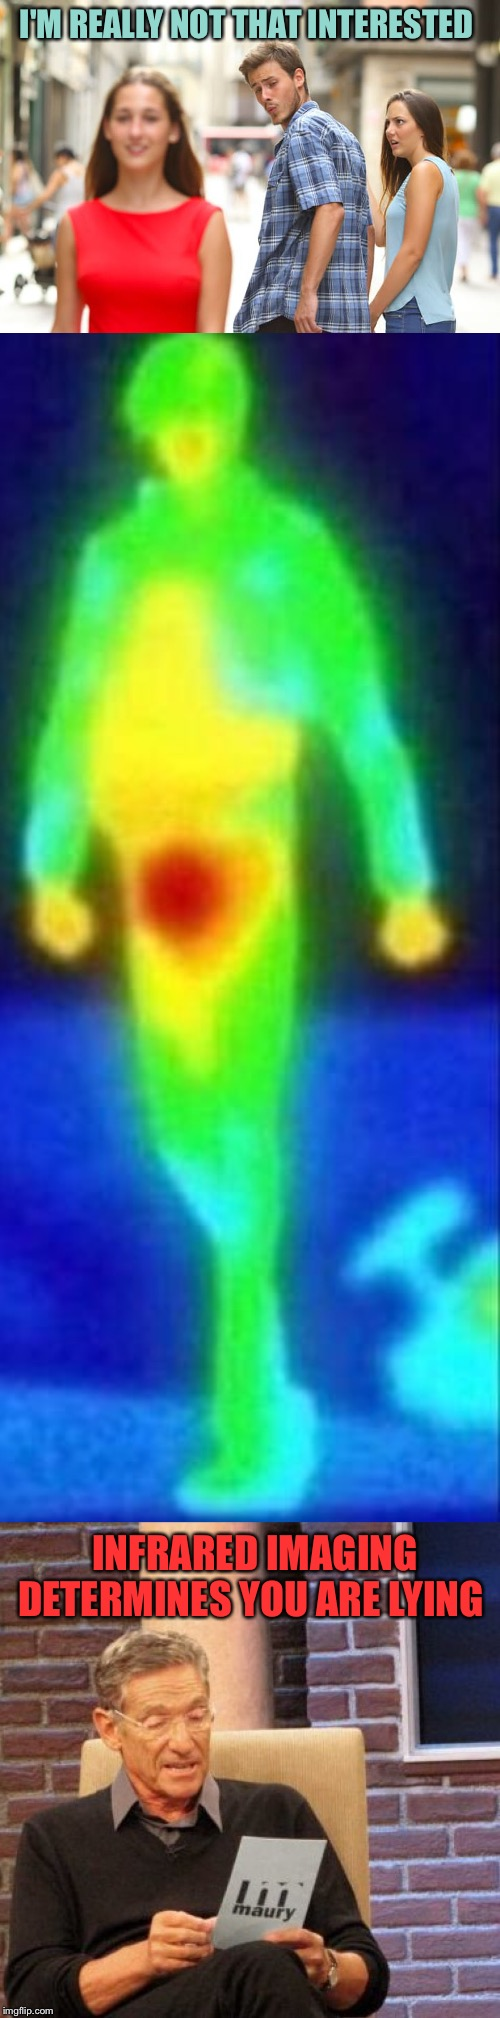 Science, pointing out the obvious. | I'M REALLY NOT THAT INTERESTED INFRARED IMAGING DETERMINES YOU ARE LYING | image tagged in memes,maury lie detector,distracted boyfriend,excited,funny | made w/ Imgflip meme maker